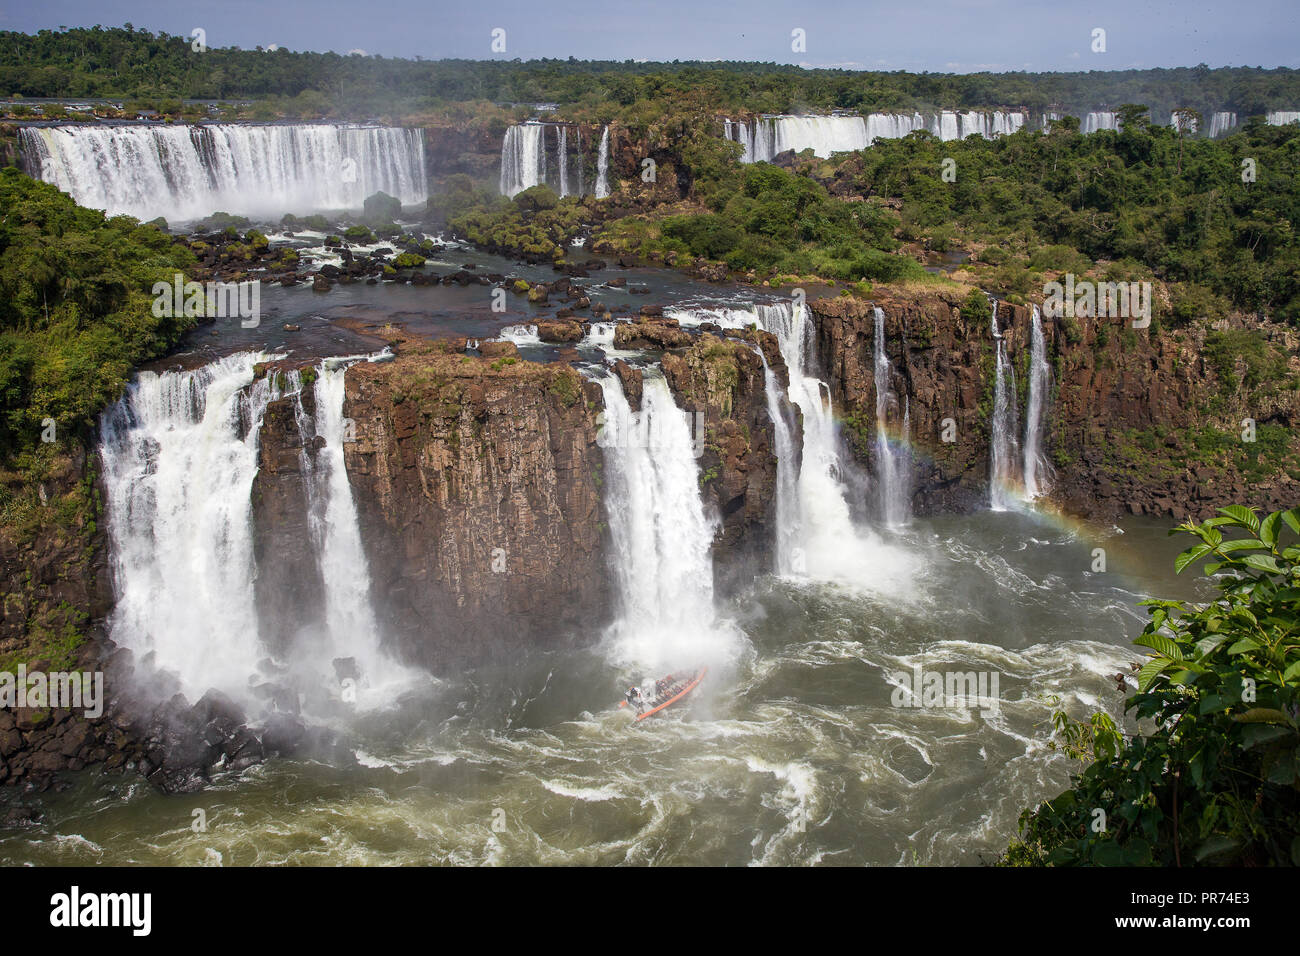 A partial view of the Iguazu falls in Argentina - Stock Image